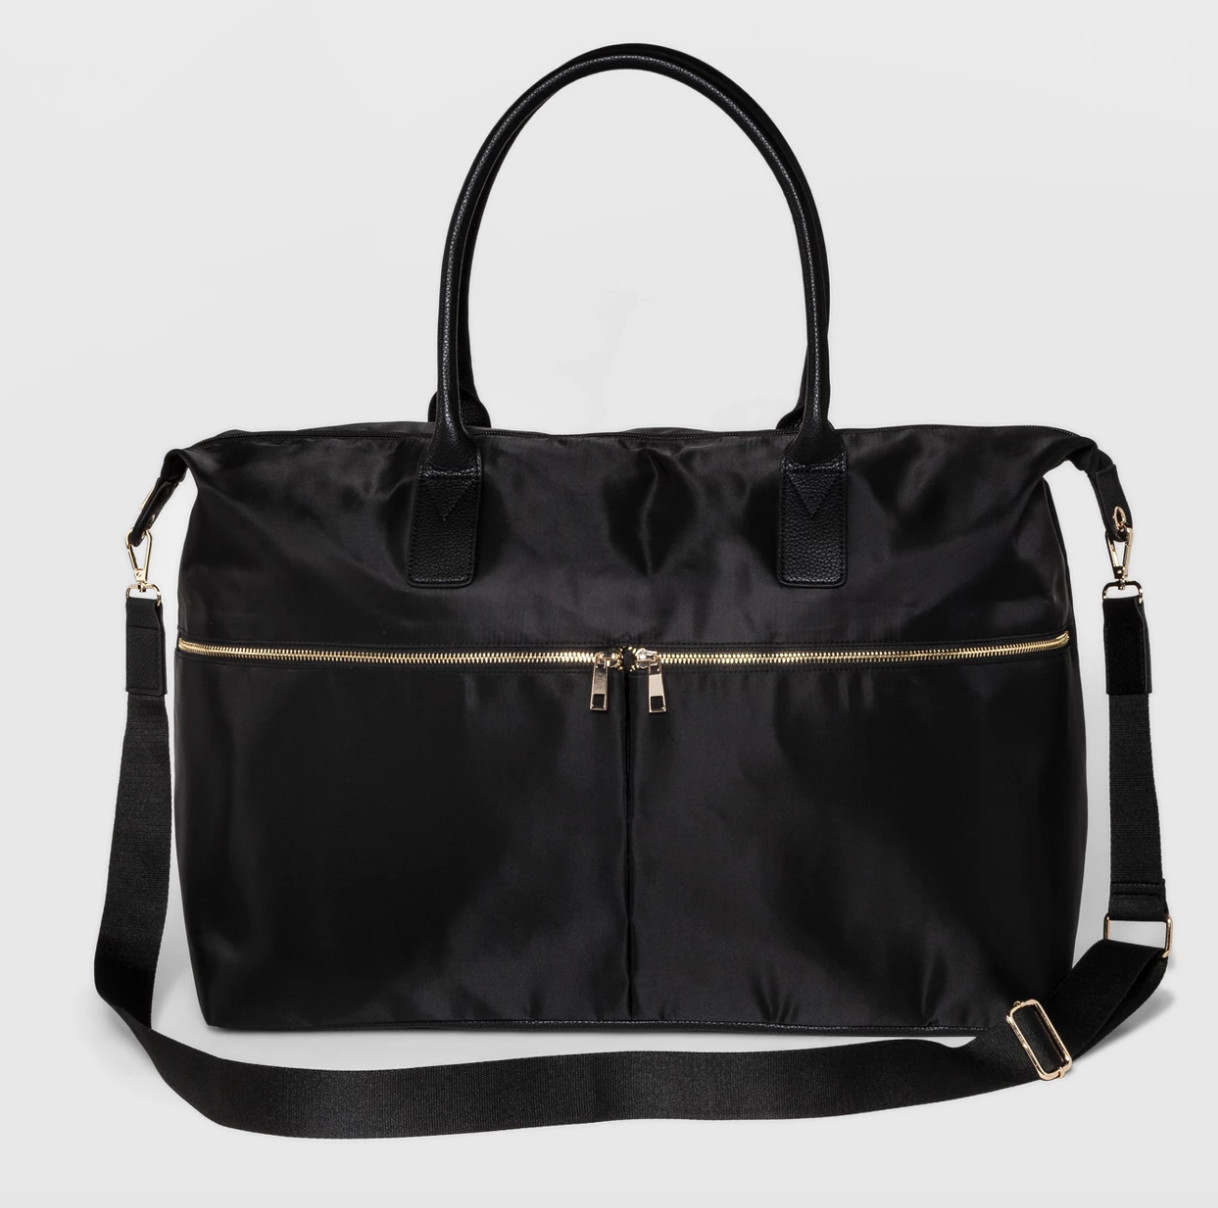 Cute Weekend Bags Under $200